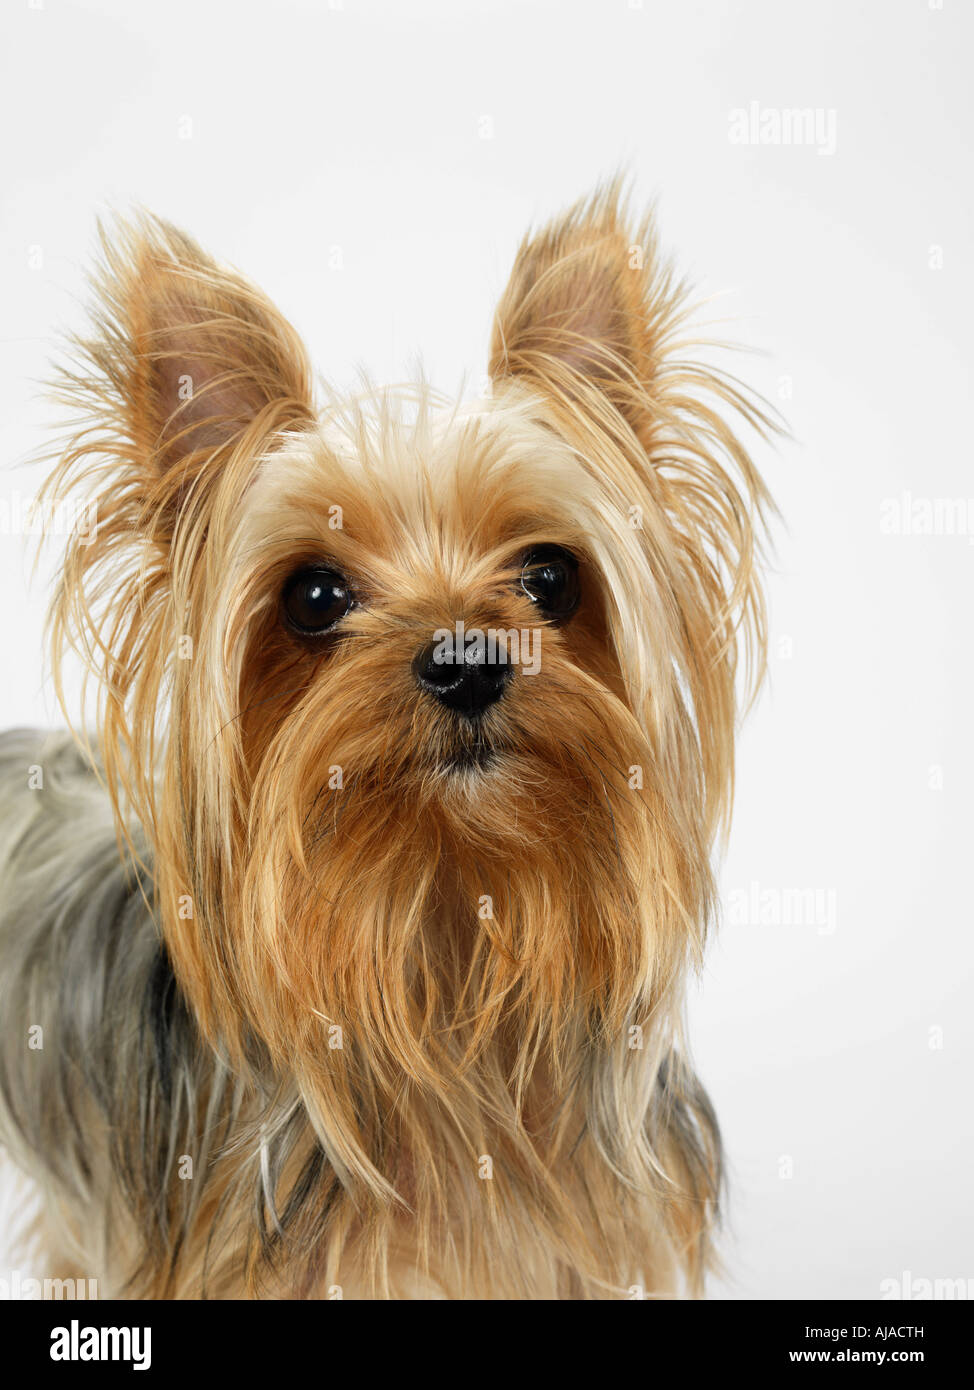 Yorkie Face Hair High Resolution Stock Photography And Images Alamy